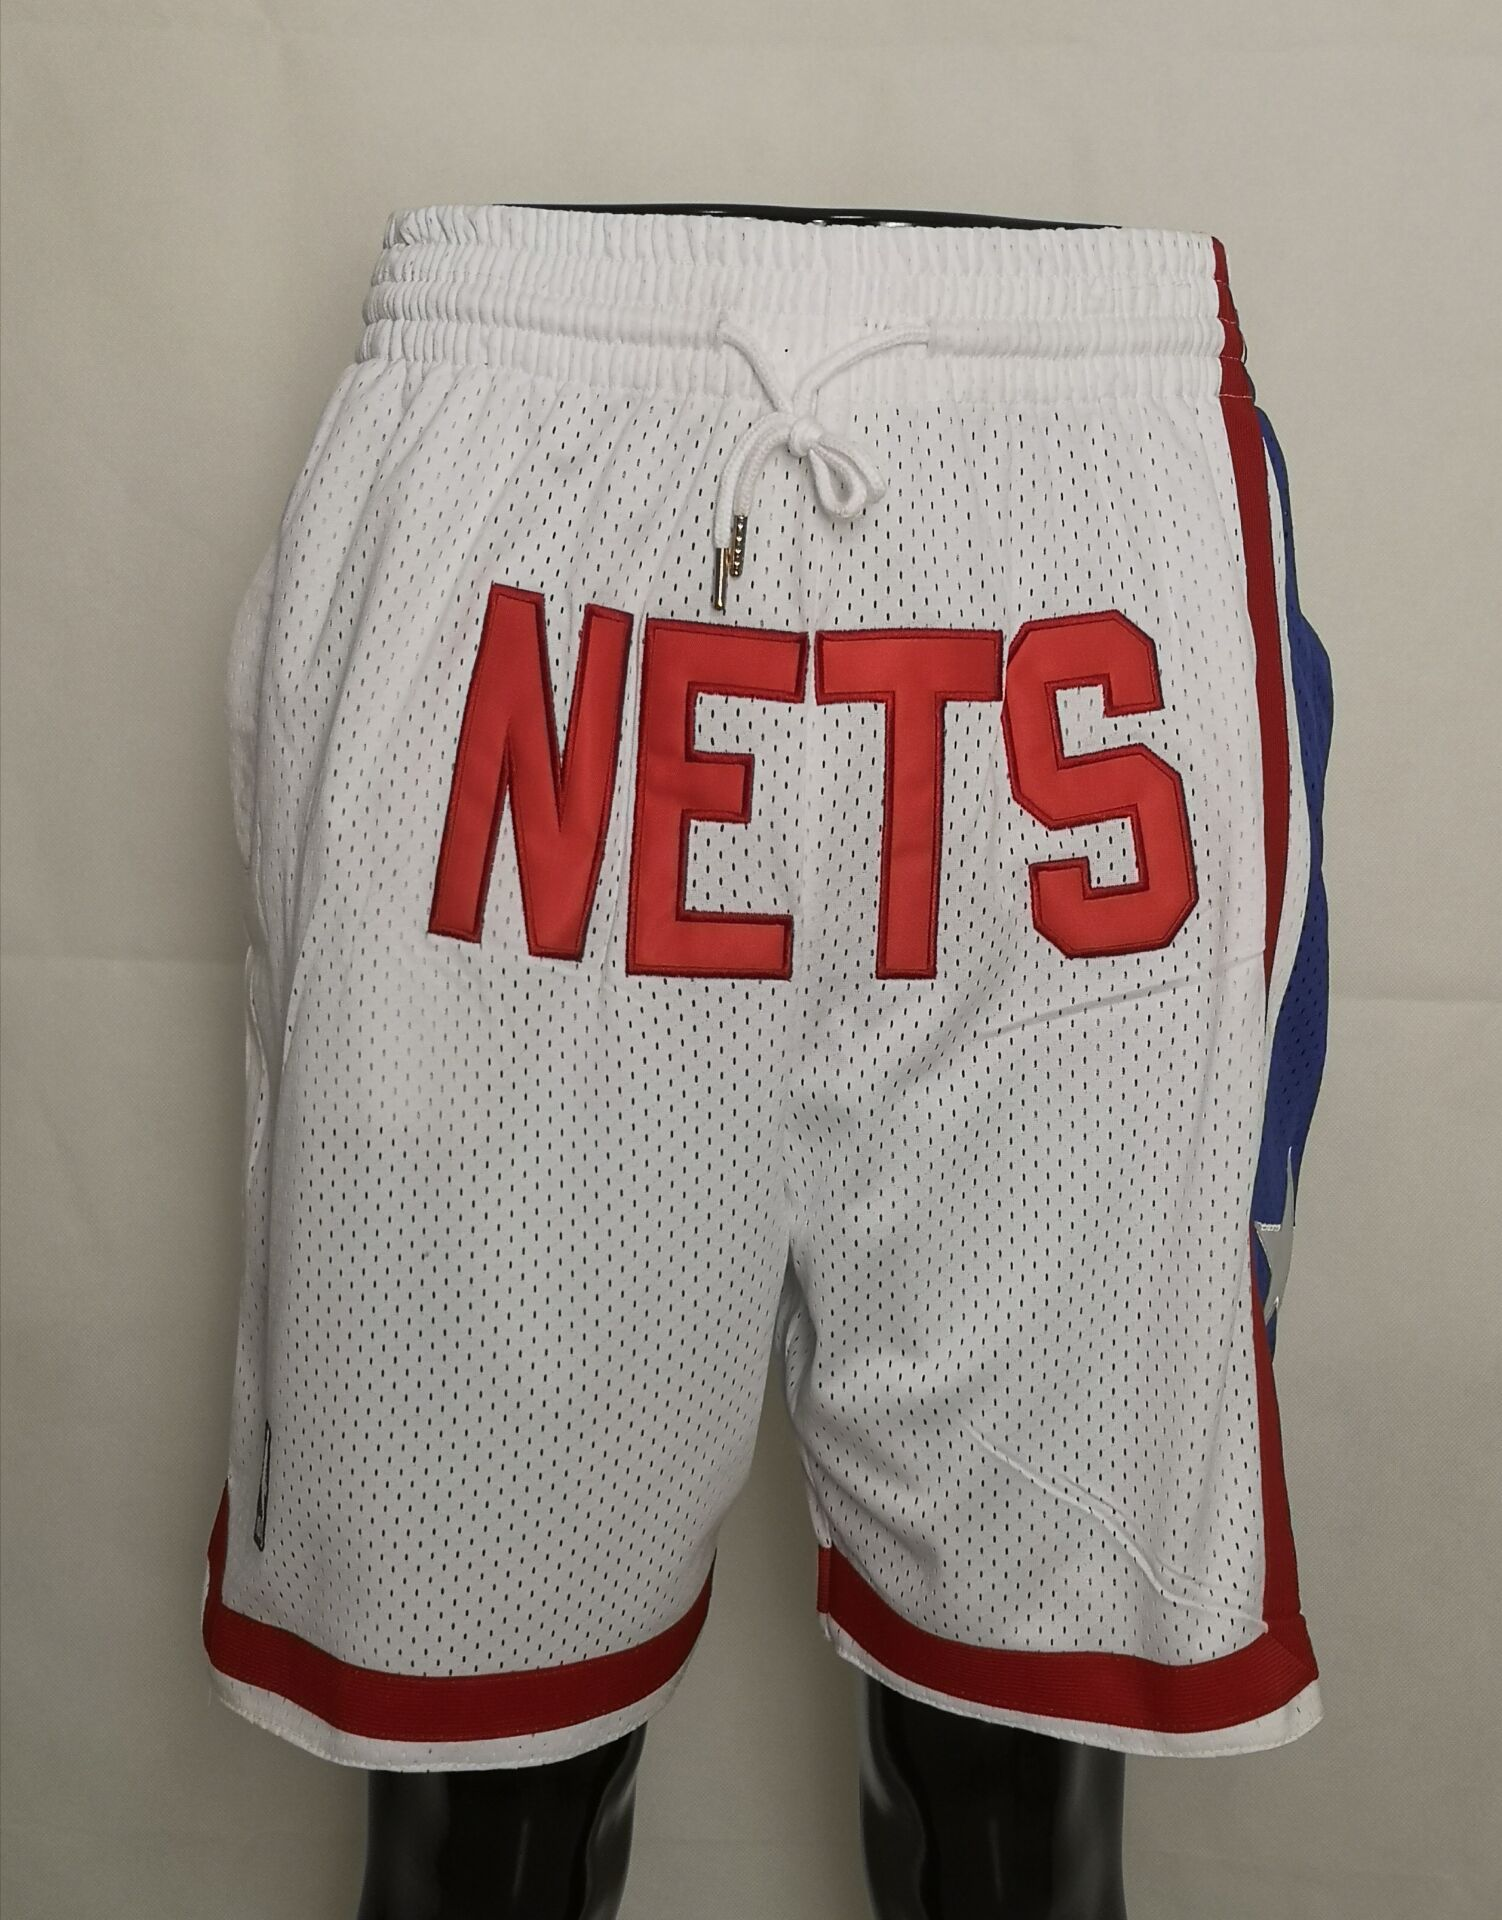 2020 Men NBA Brooklyn Nets white shorts